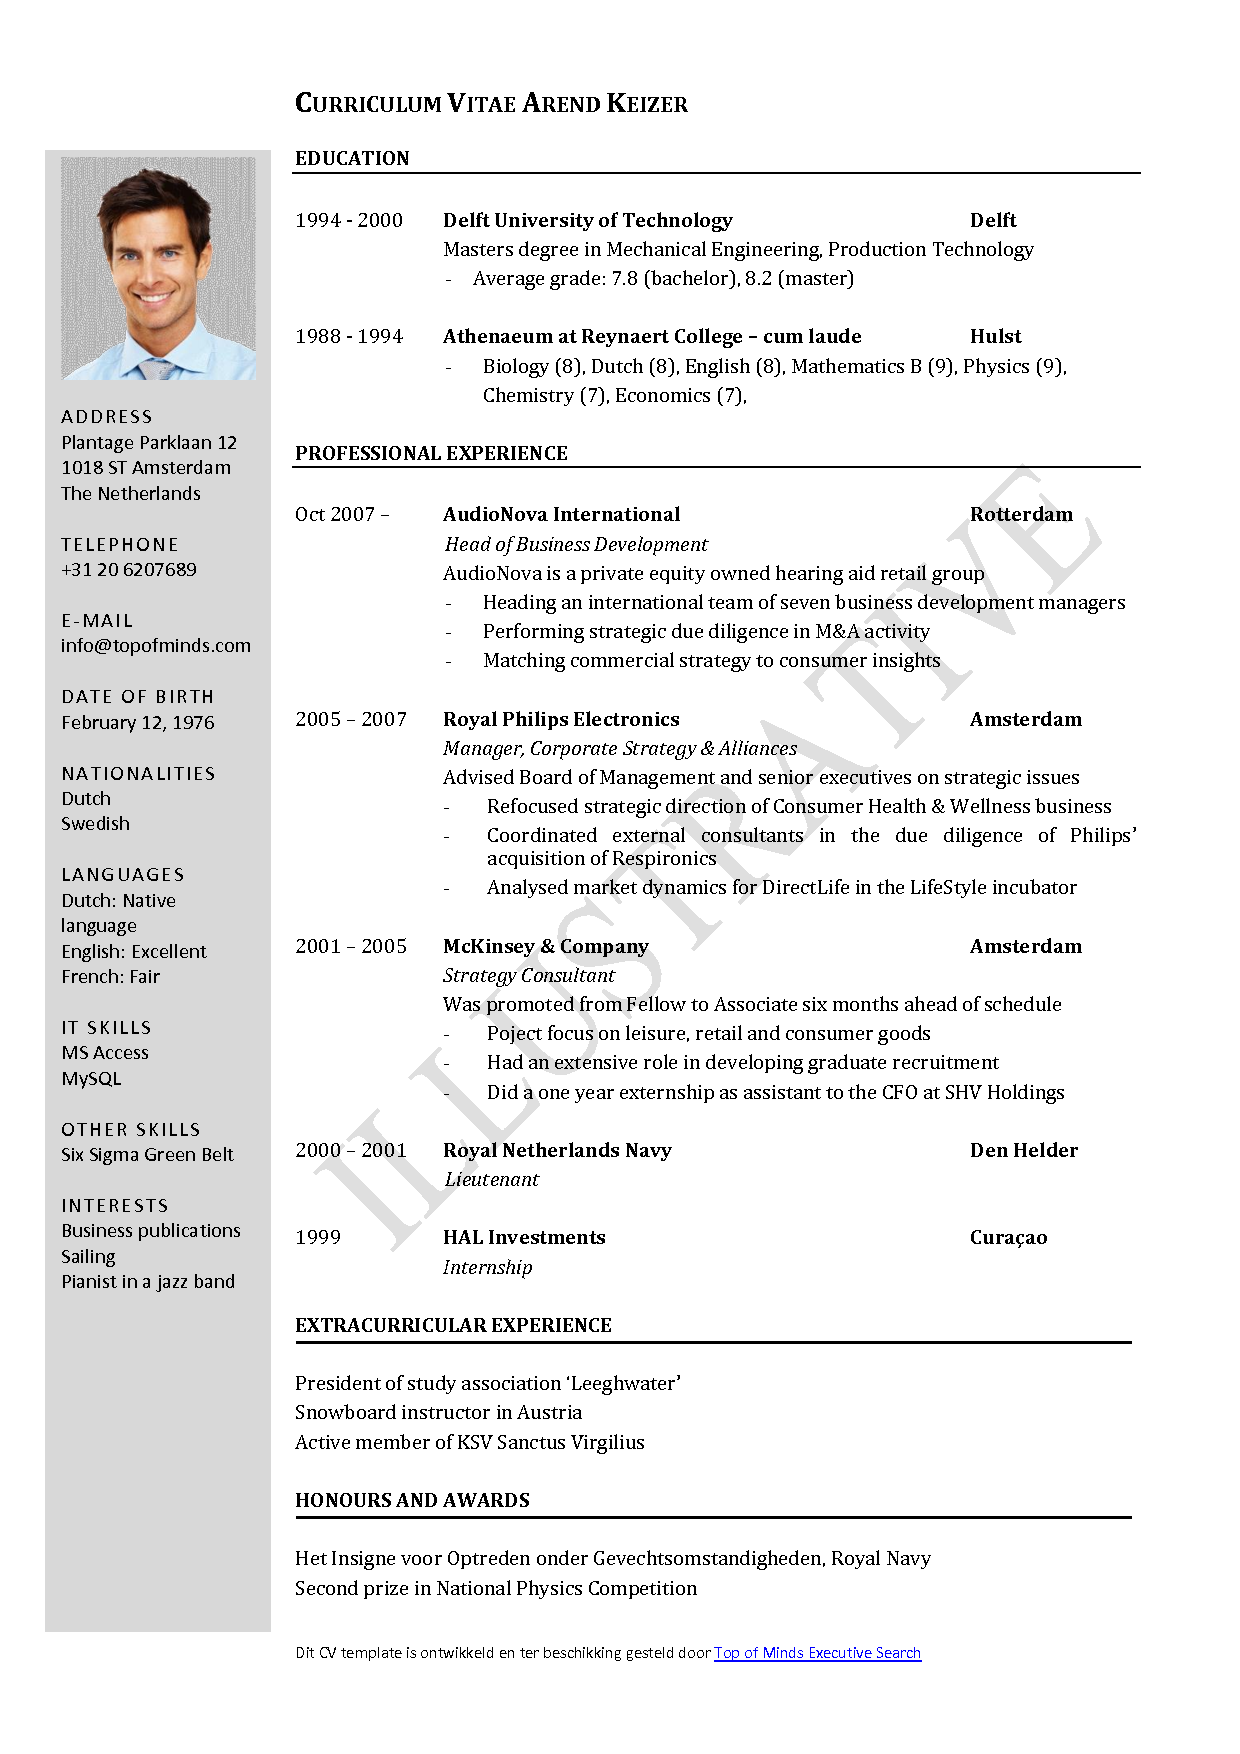 free curriculum vitae template word download cv template probio5